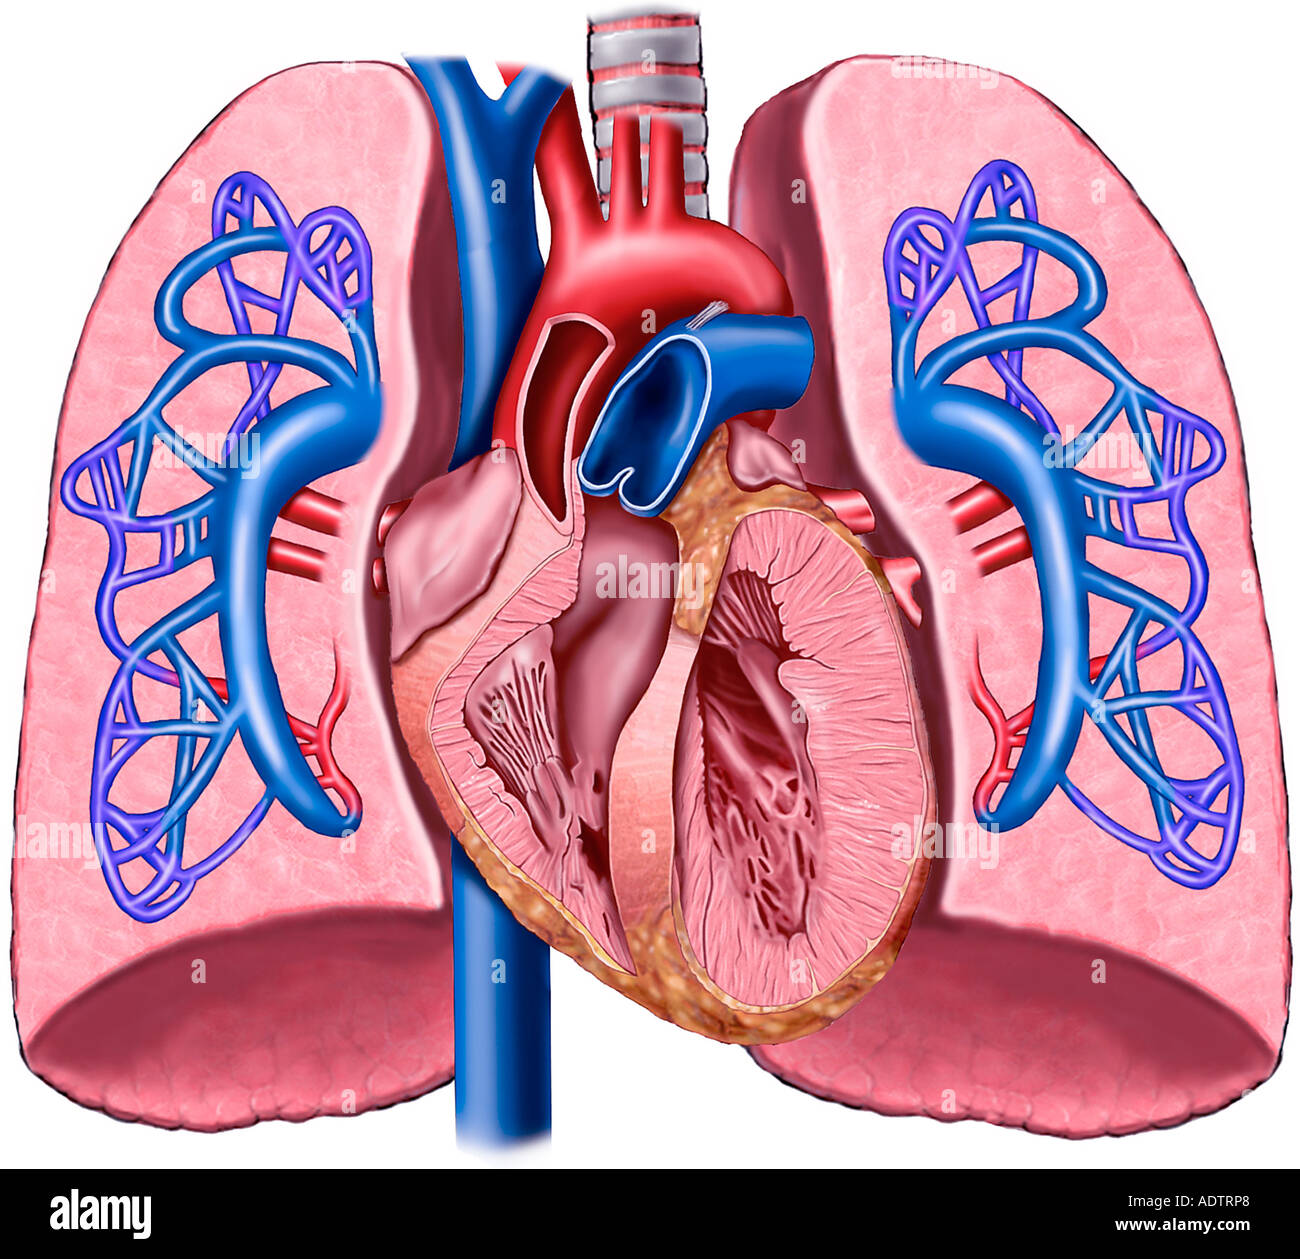 hight resolution of anatomy of the heart and lungs with pulmonary artery circulation